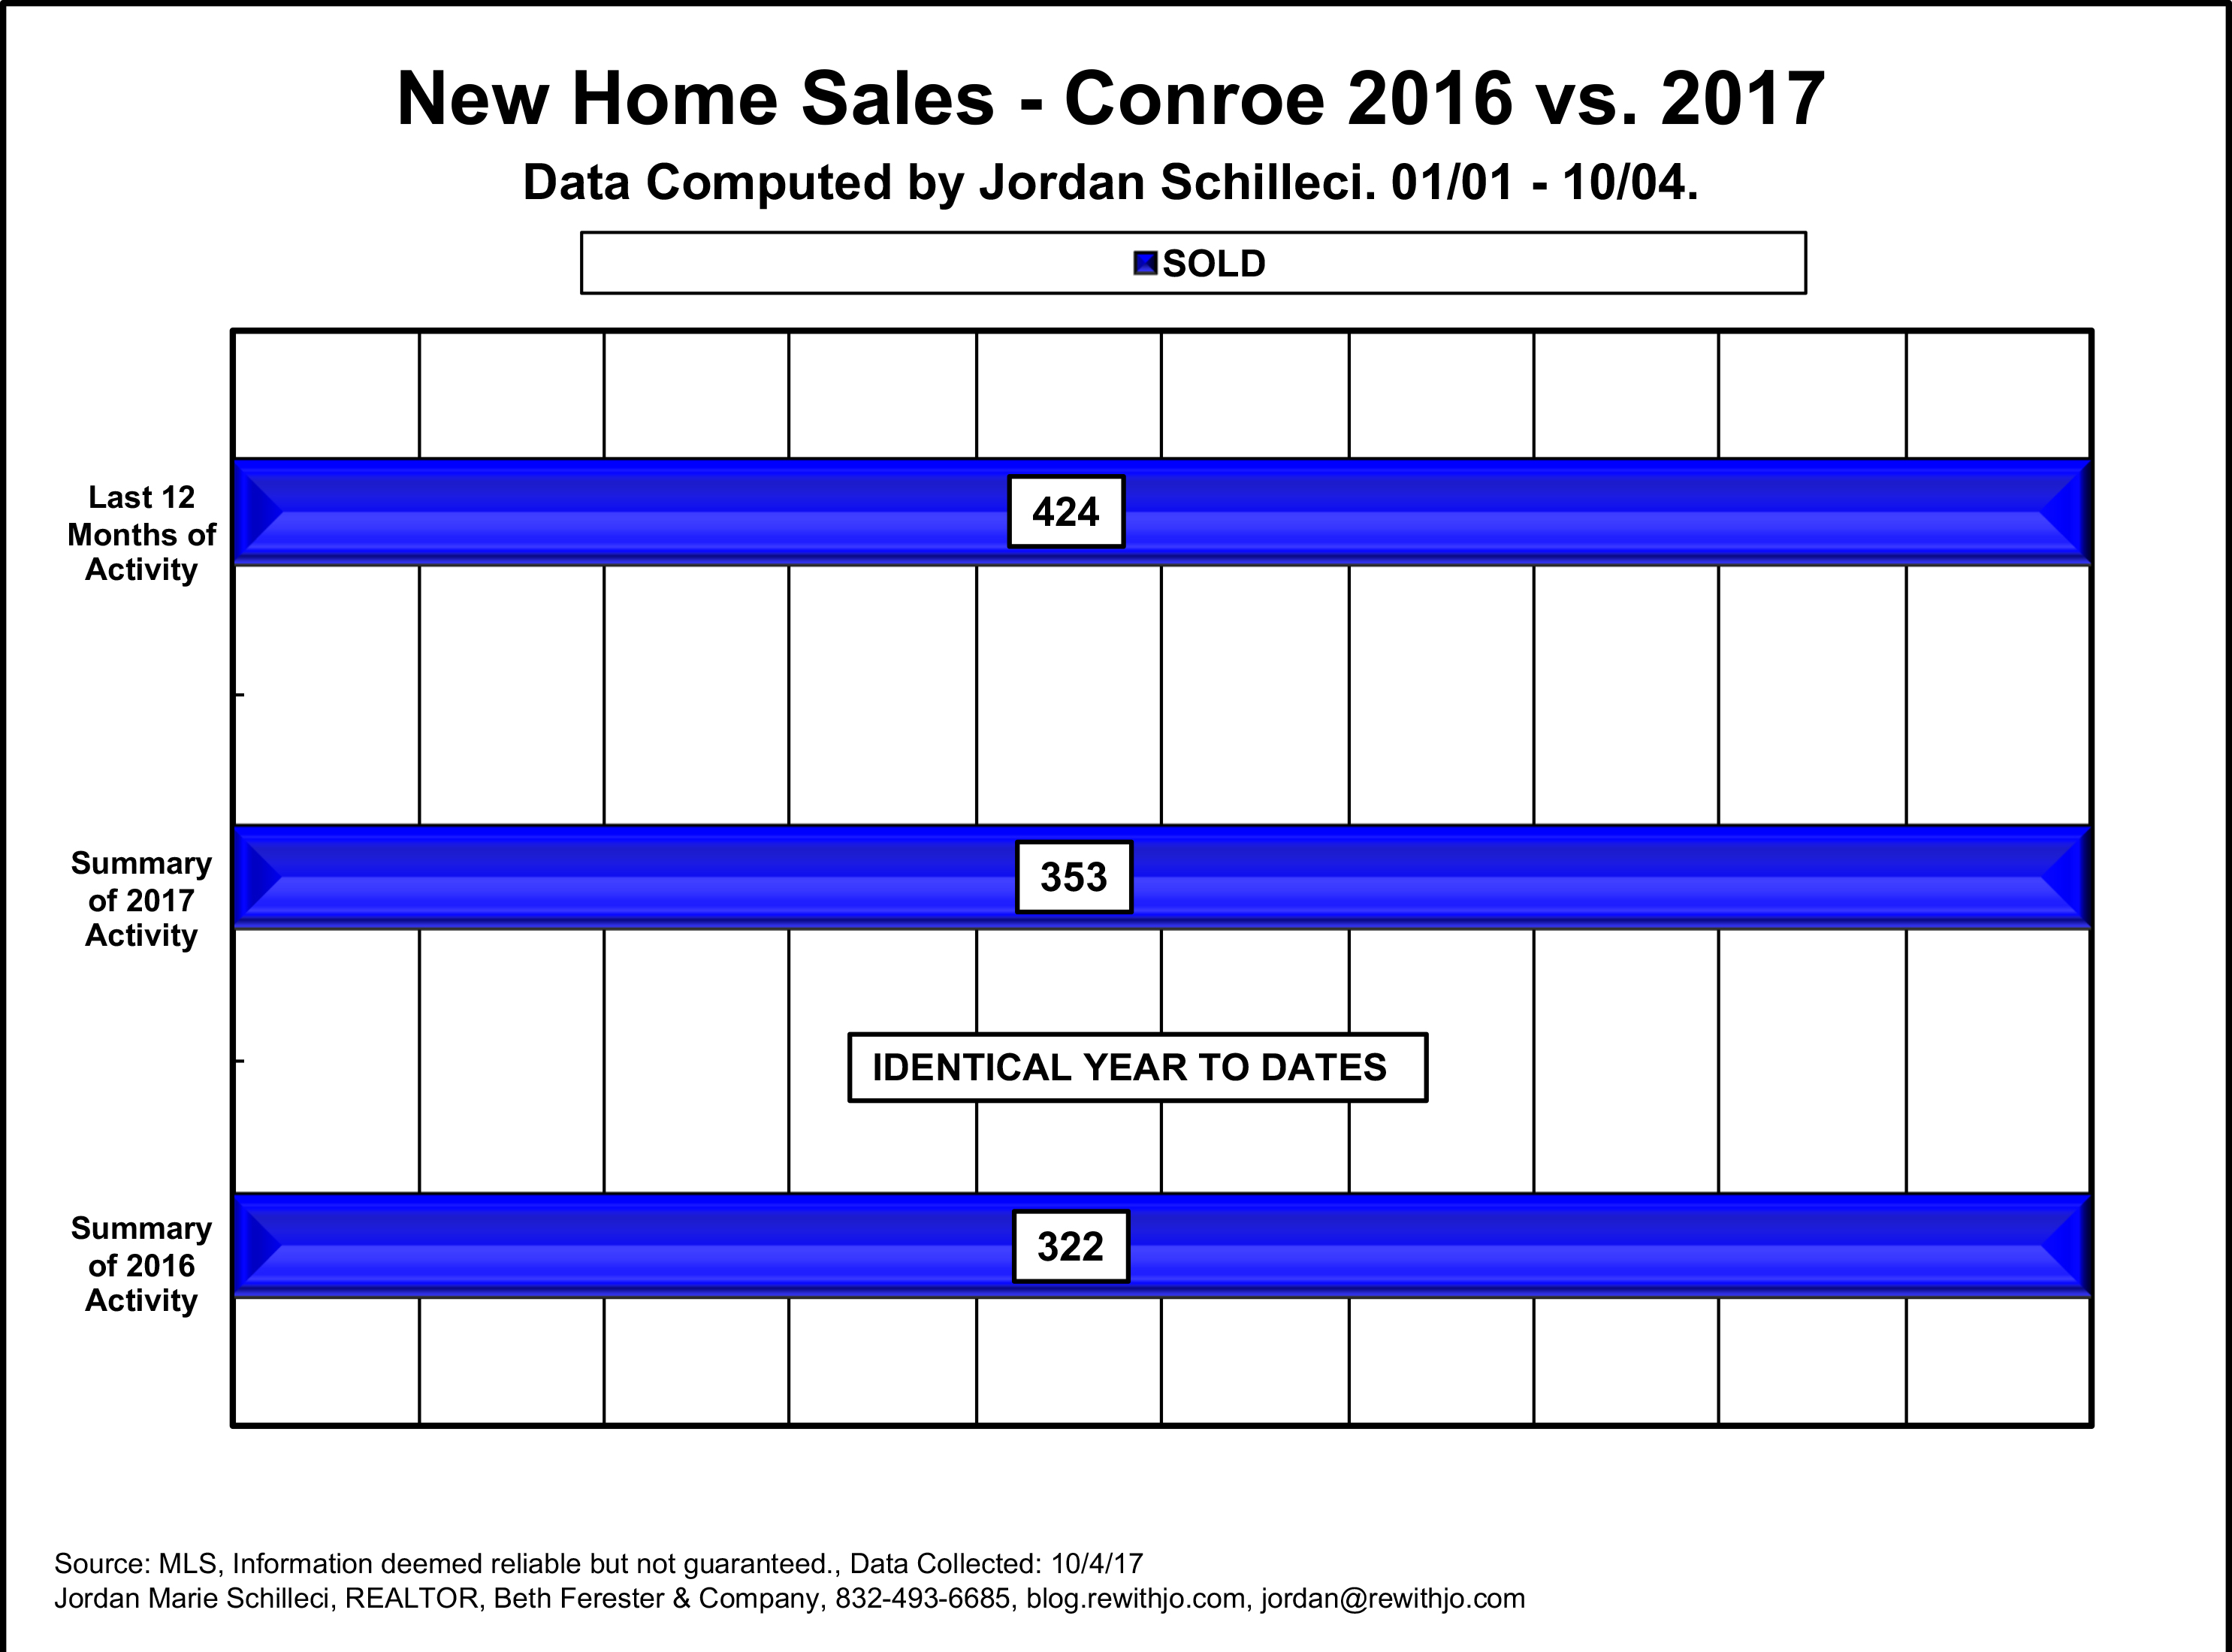 New Home Sales Conroe